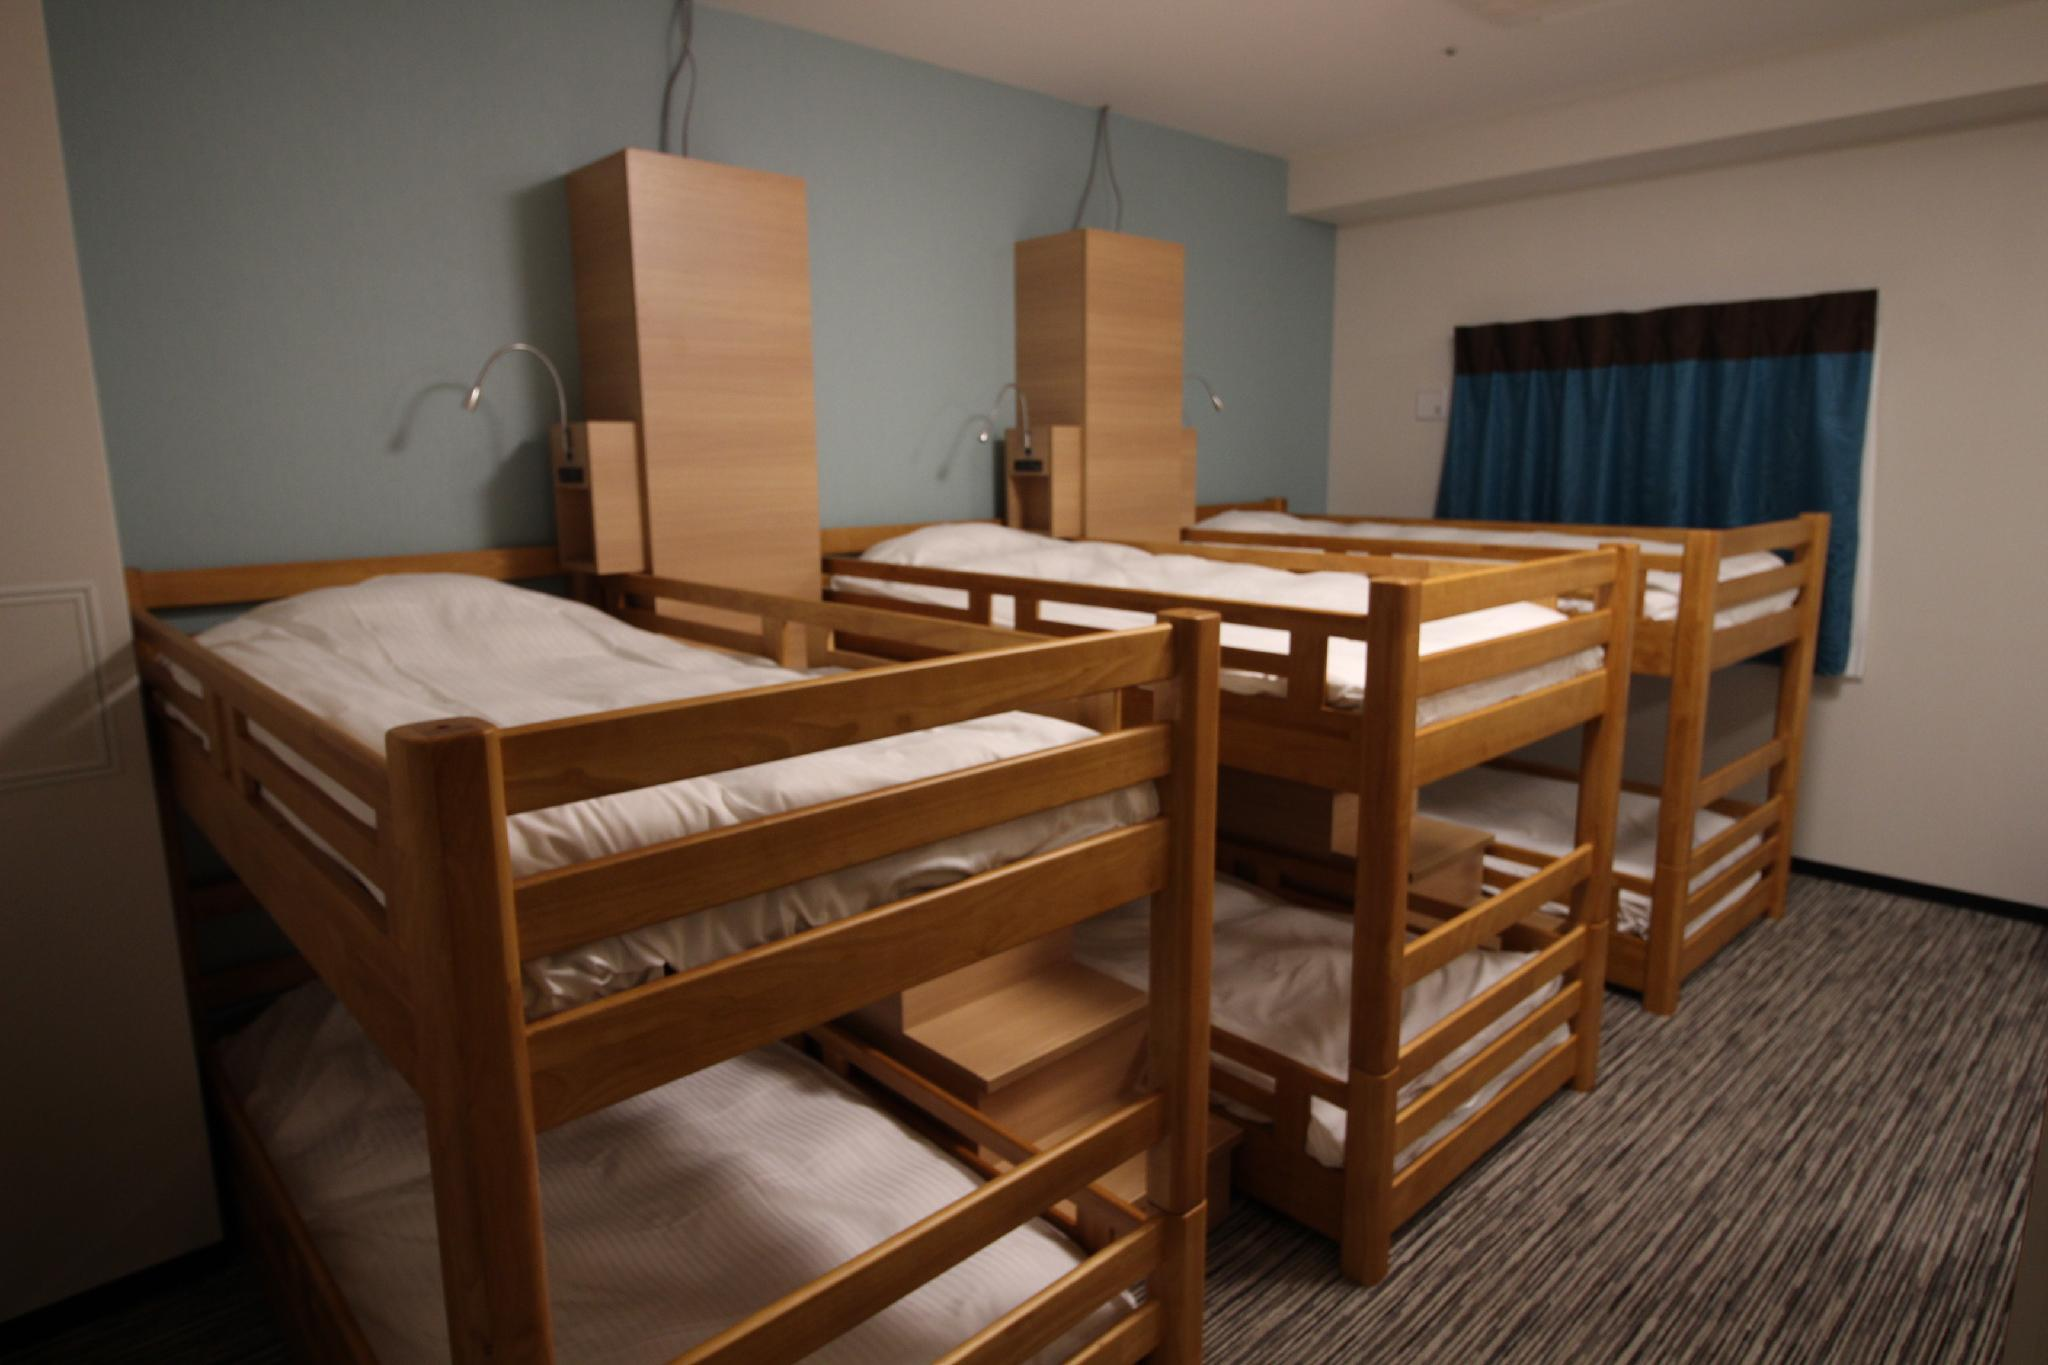 Family Room C for 5 People with 3 Bunk Beds - Non-Smoking